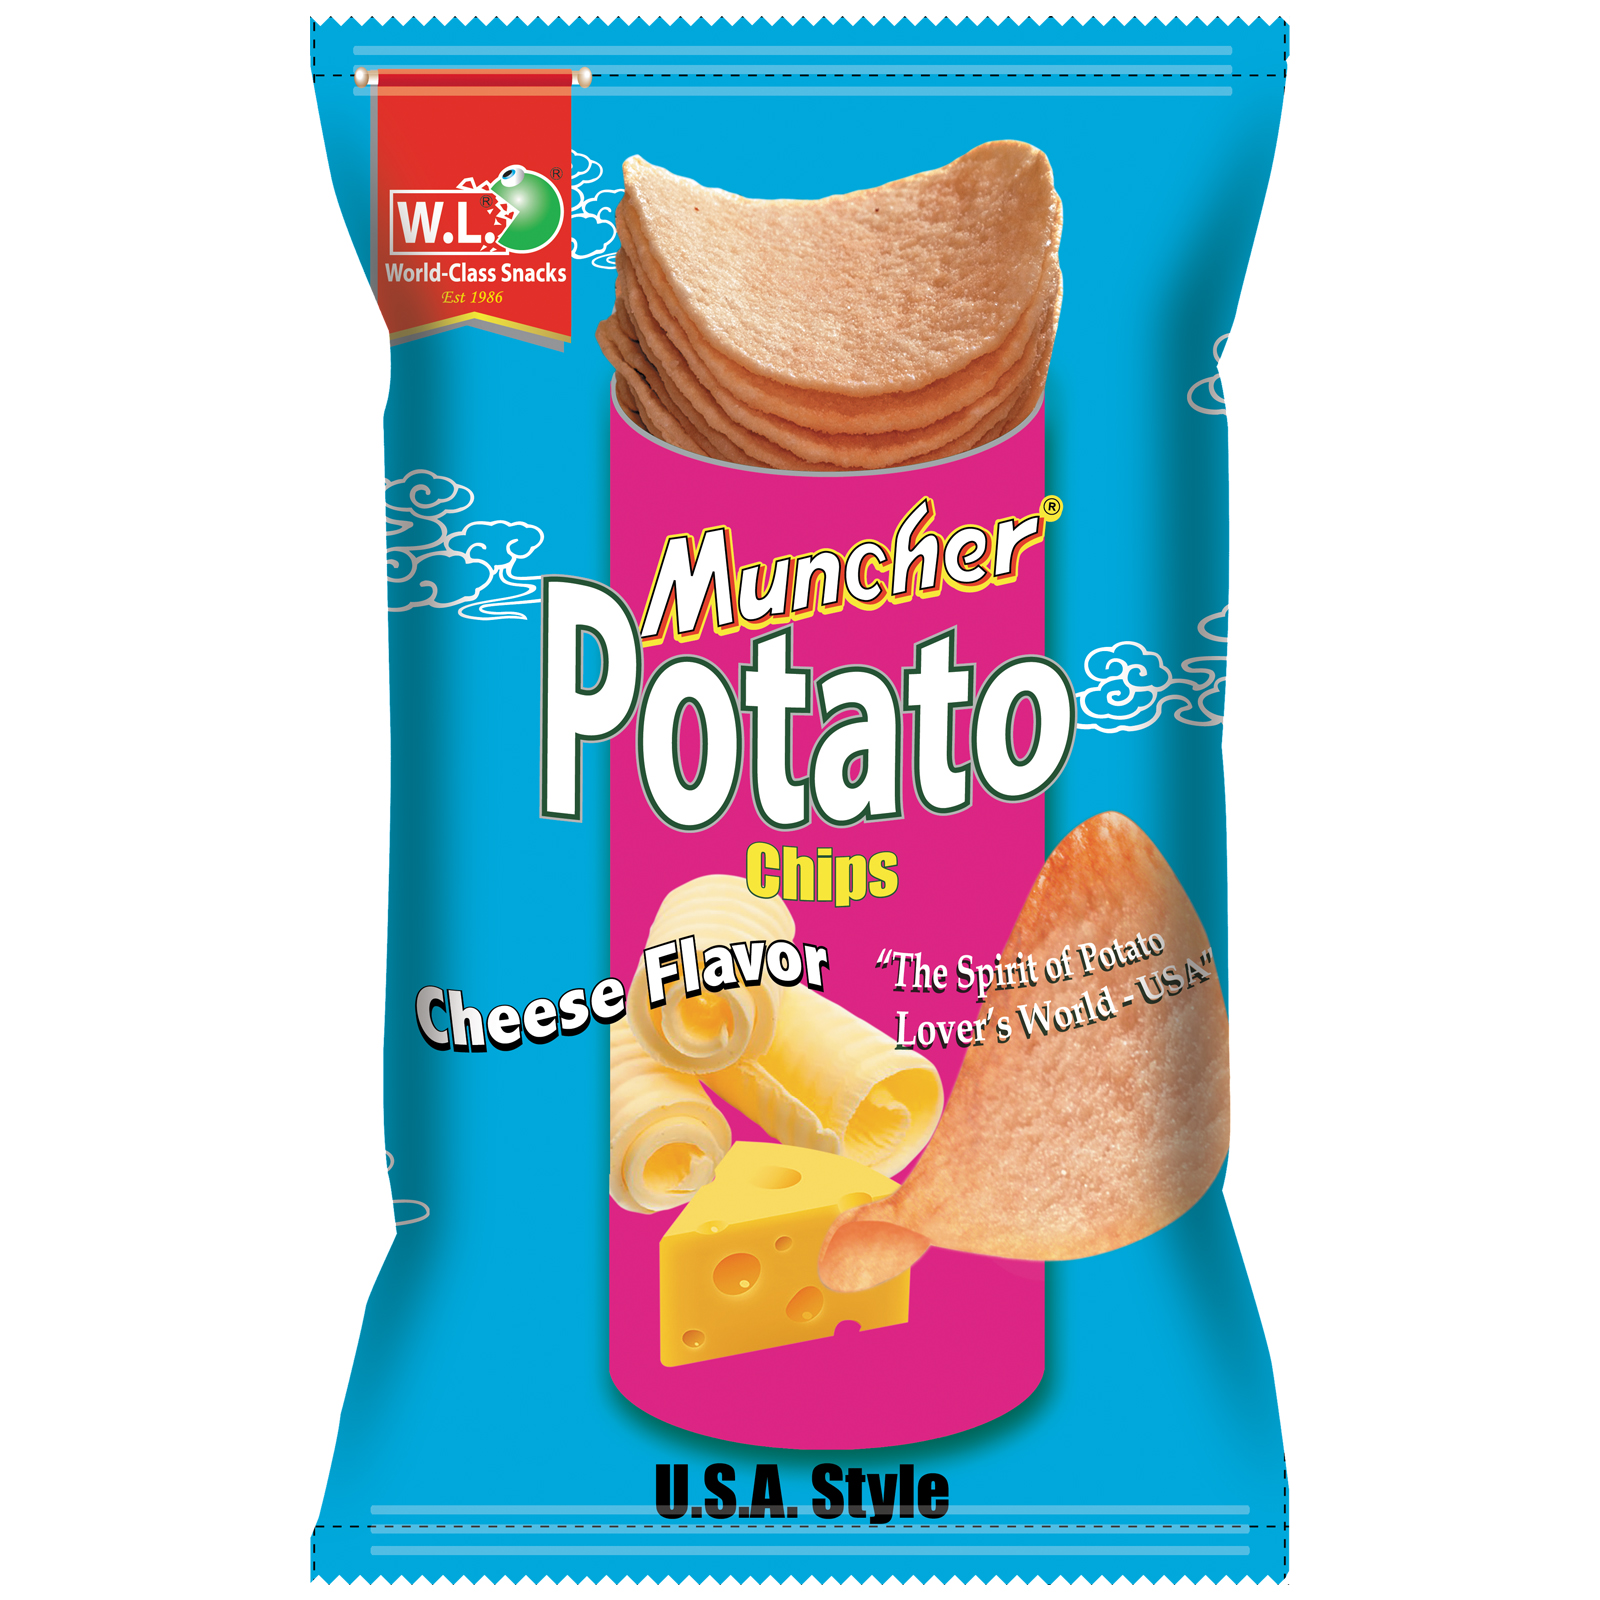 Muncher Potato Cheese Flavor 100g